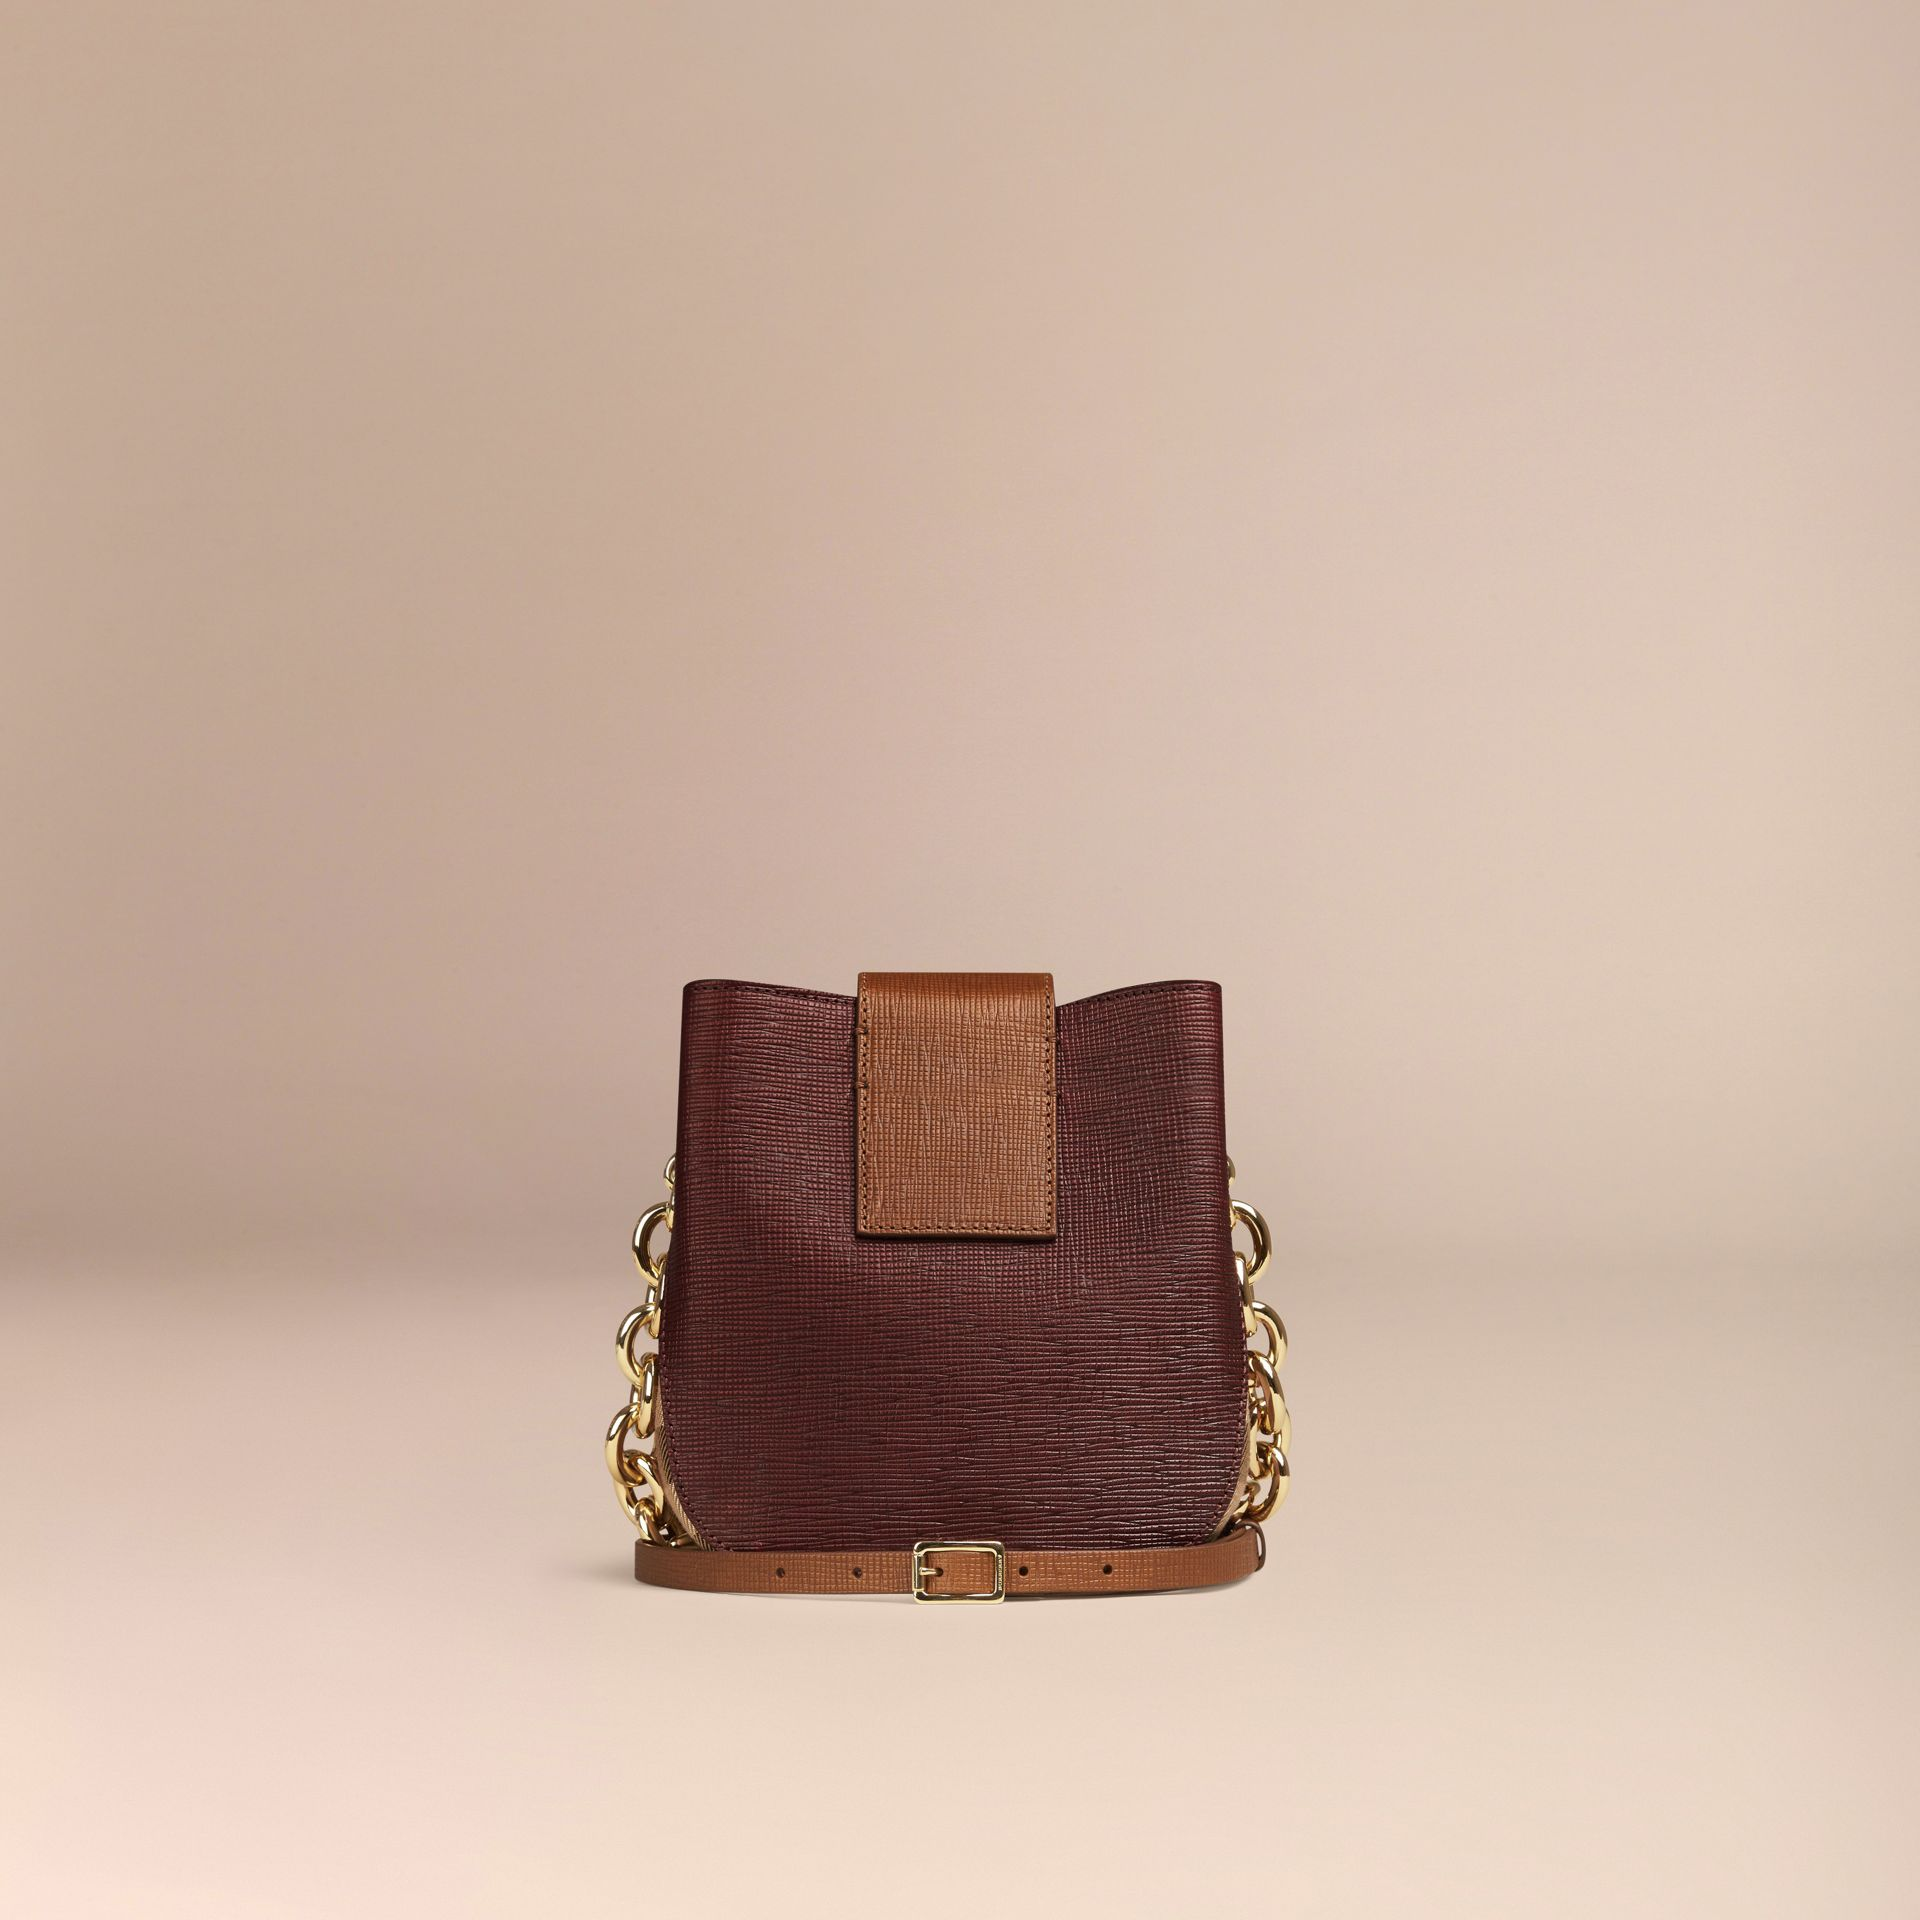 Burgundy The Small Square Buckle Bag in Leather and House Check Burgundy - gallery image 4